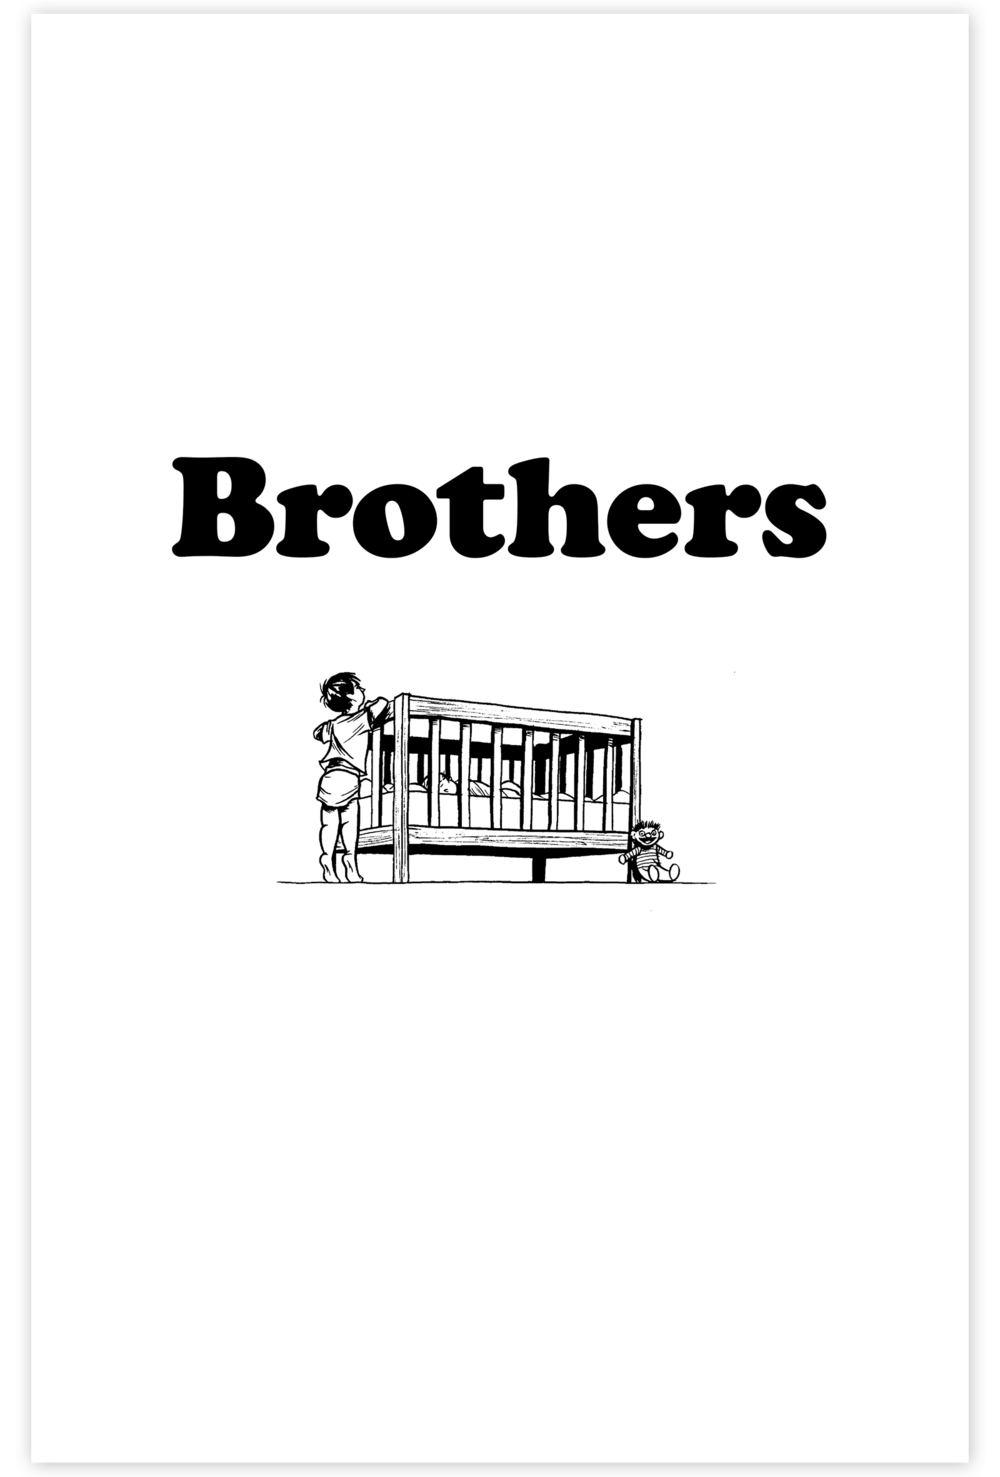 22-Brothers-01